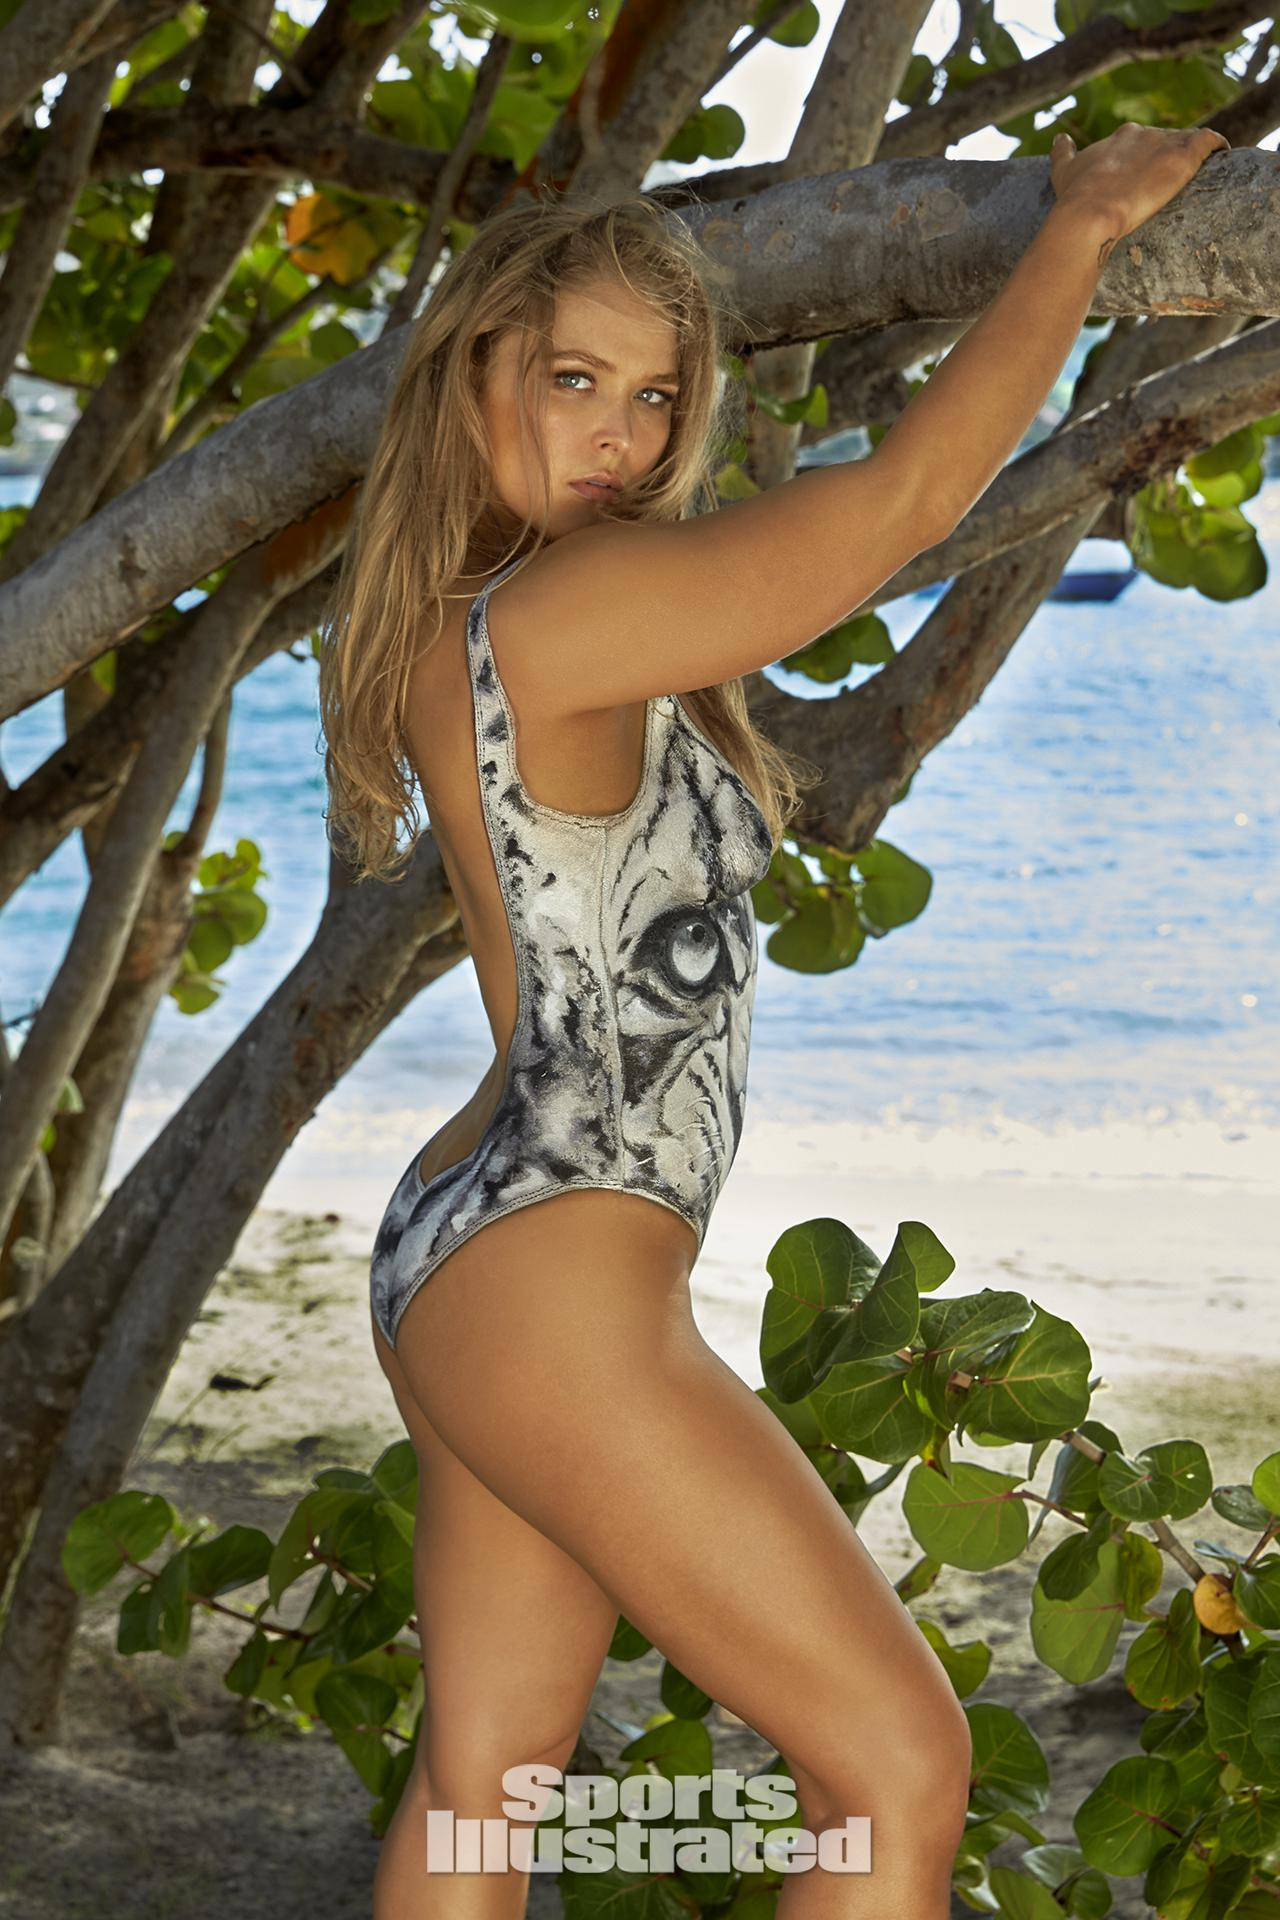 ronda-rousey-foi-capa-da-revista-sports-illustrated-so-de-bodypaint14